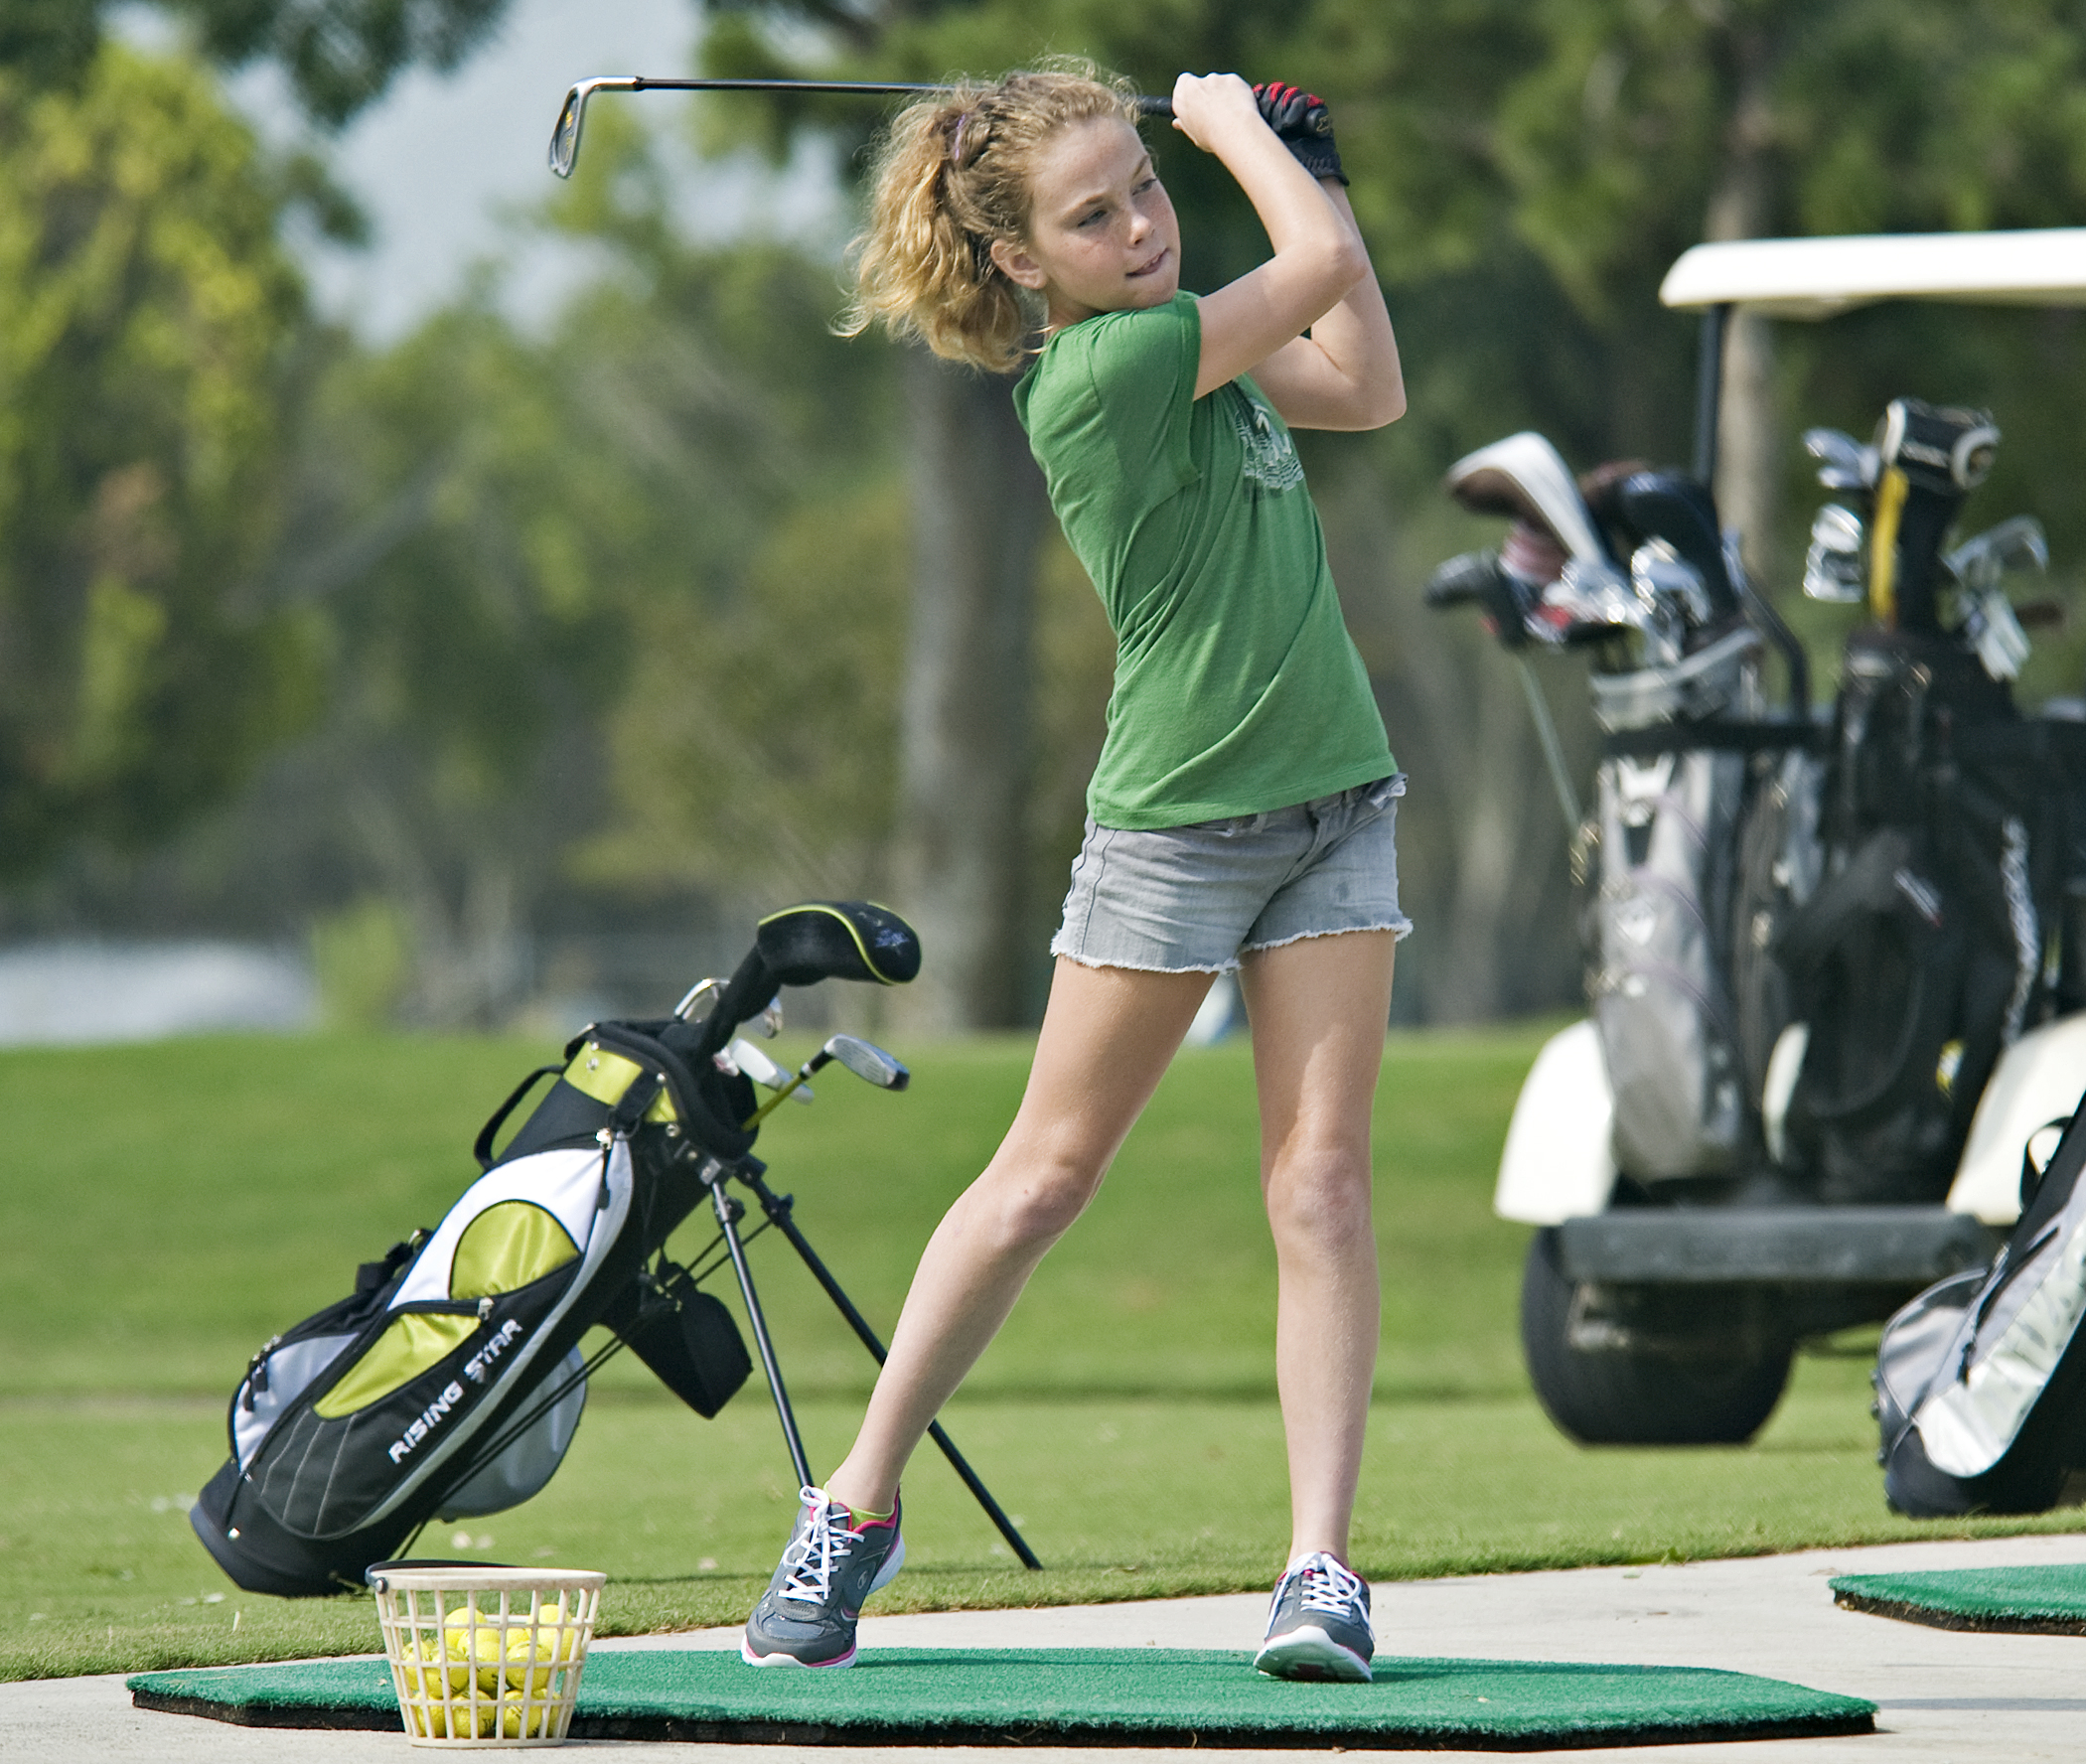 Golf Lessons Offered Fridays! - We are excited to offer this new program to Our Sporting Lives! Golf instruction will include putting and games, along with some general knowledge about the course and play. Open to 2nd through 6th graders, practice will take place in Duniway Park, the Lilac Gardens, TIS, and then two rounds of golf at area courses.Photo Credit: Benjamin Faske